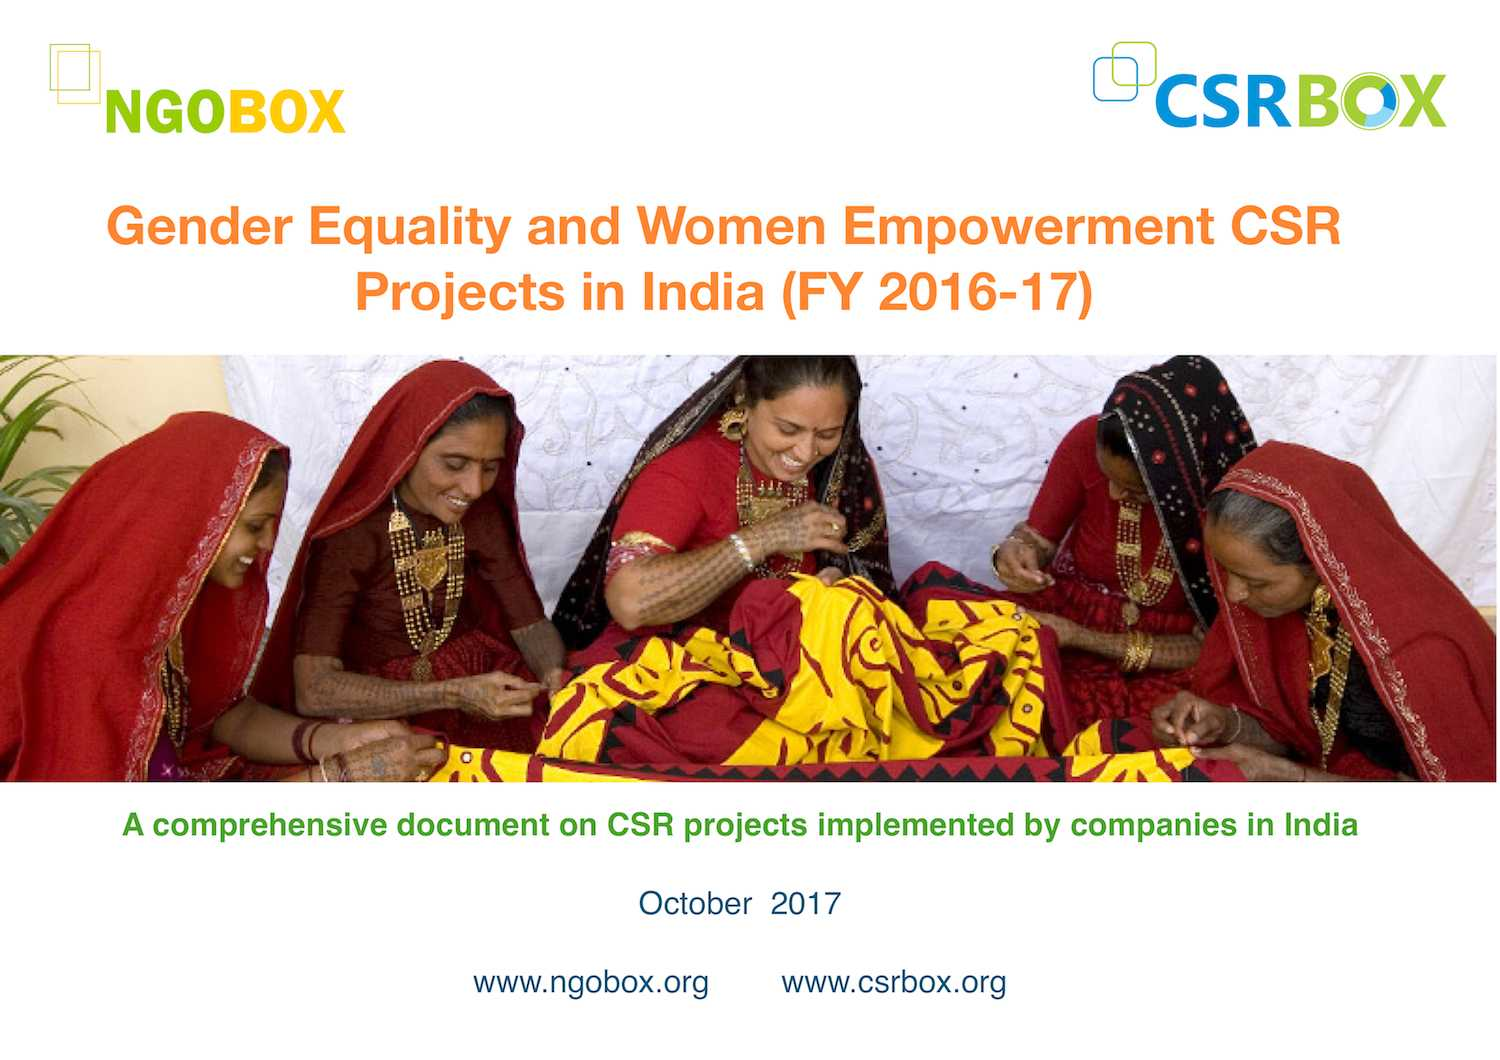 Women Empowerment CSR Projects in India (FY 2016-17)